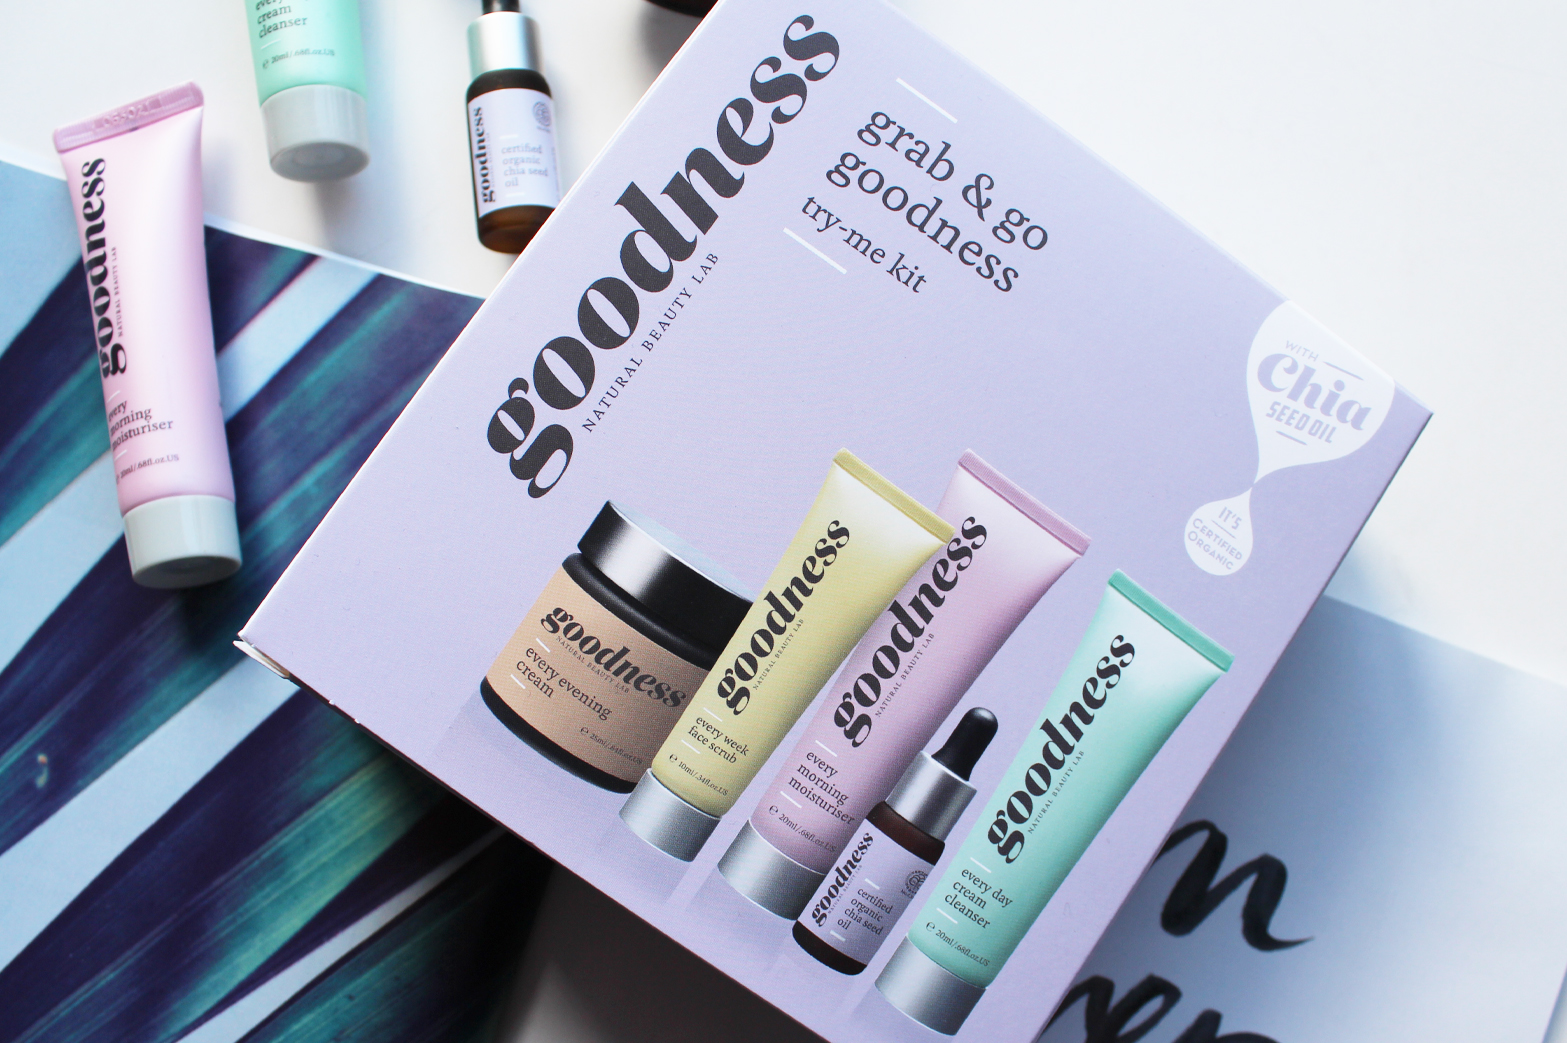 GOODNESS PRODUCTS | Grab & Go Goodness Try-It Kit Skincare Review - CassandraMyee